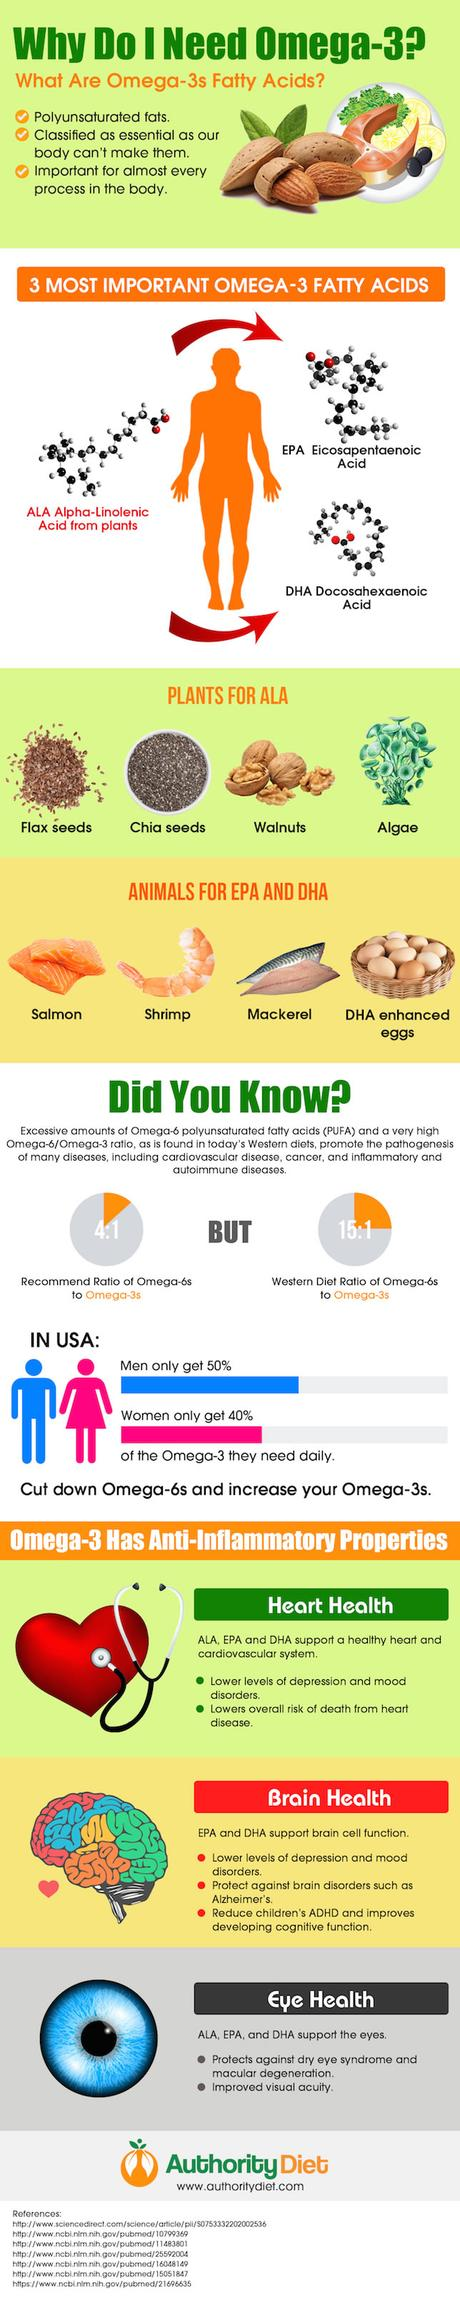 3 Most Crucial Types of Omega-3 Essential Fatty Acids